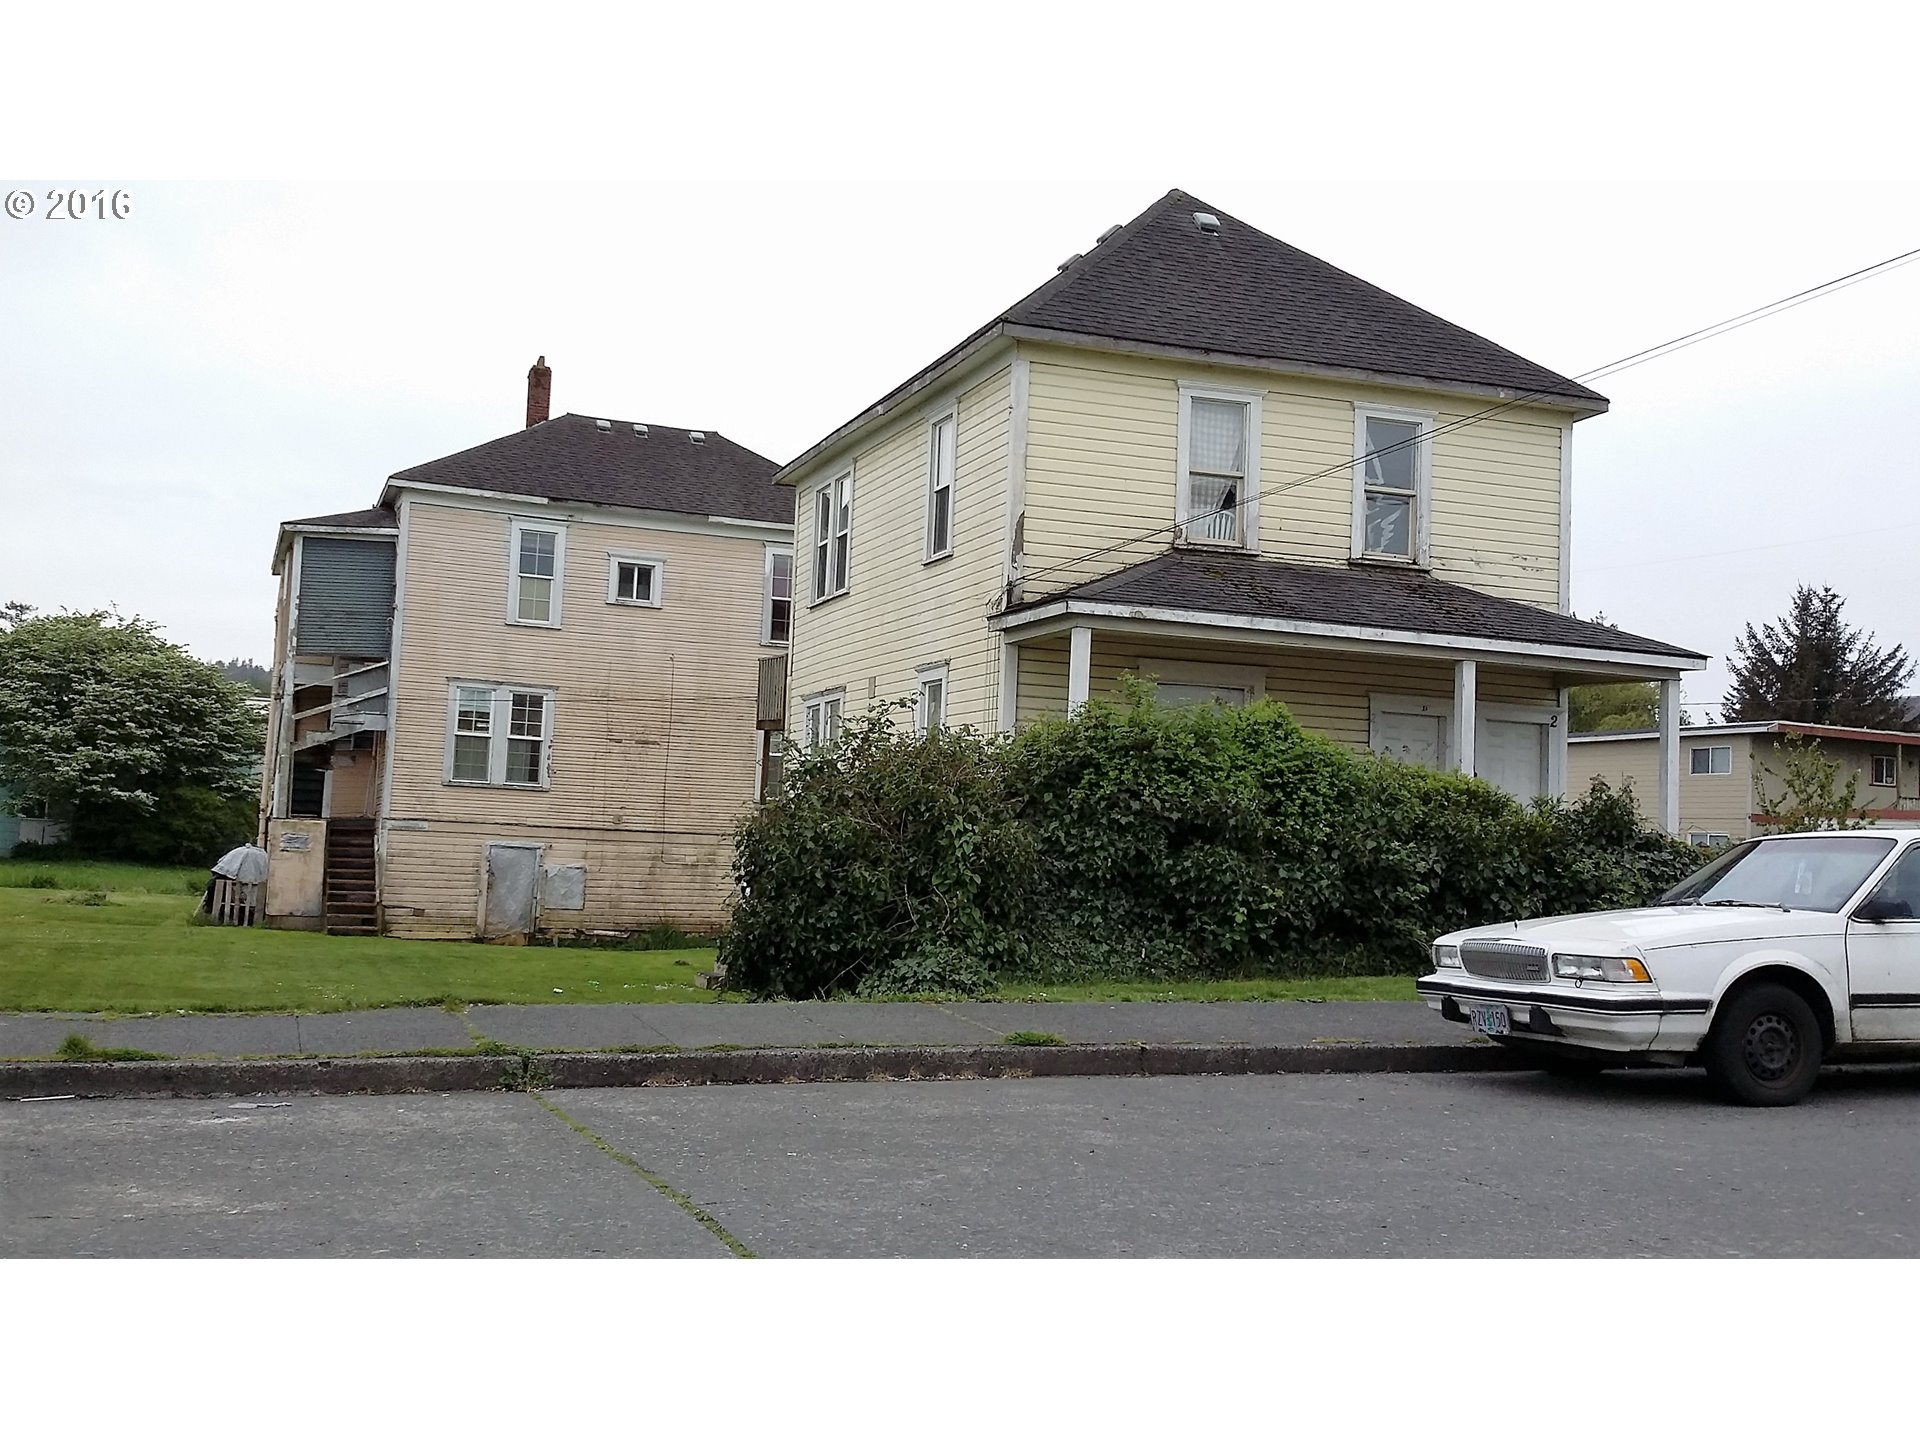 297 Hall Coos Bay Or 97420